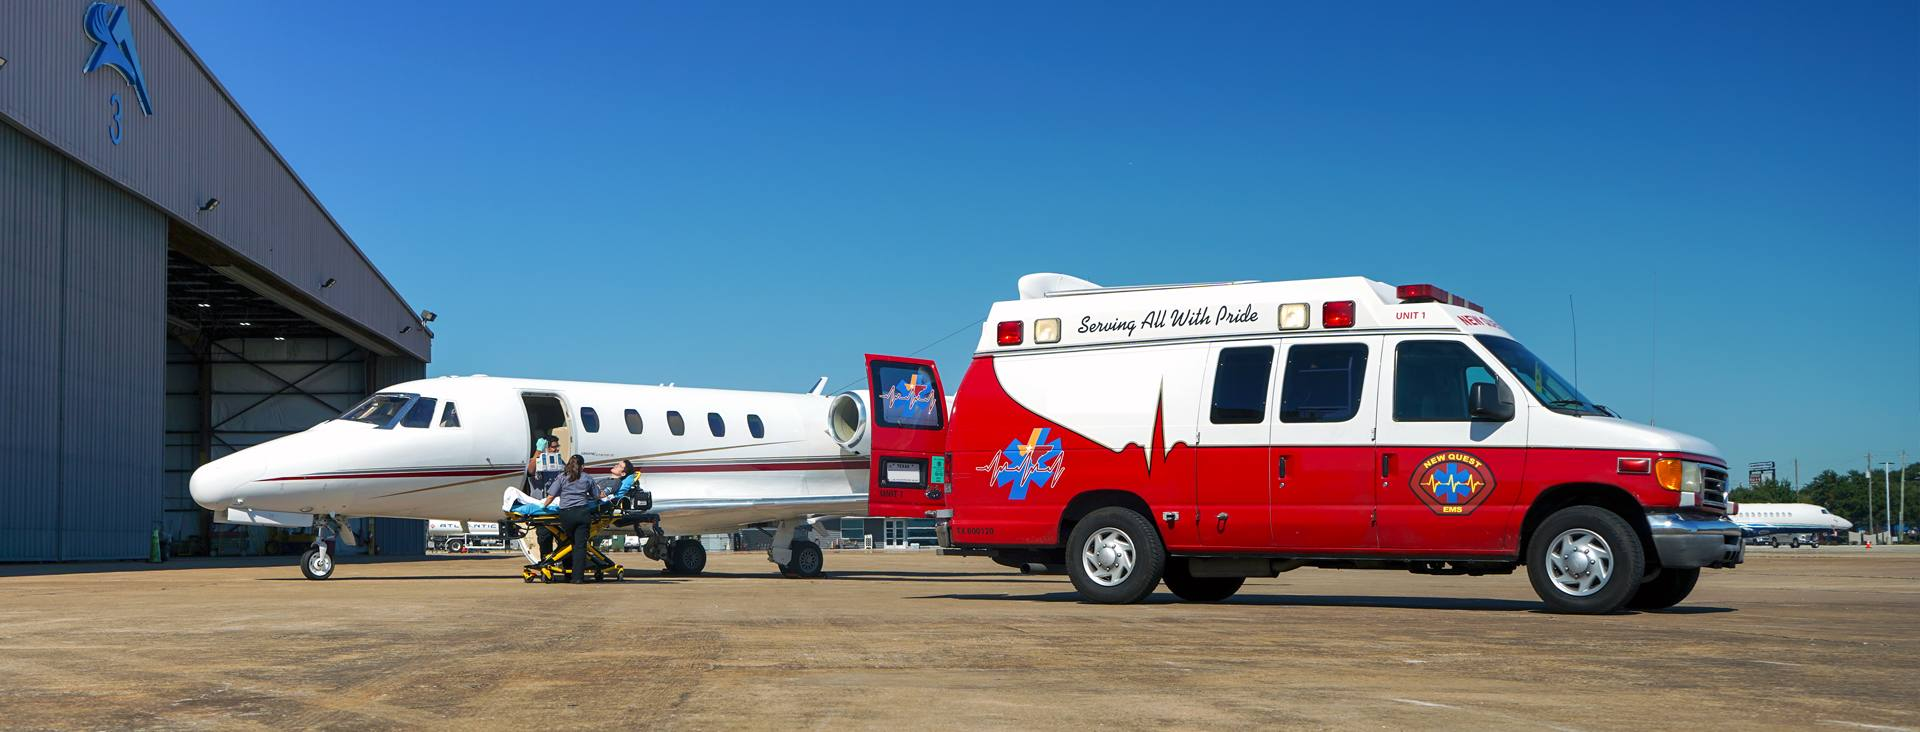 Ground Ambulance Support 24 7 - Air Ambulance | Global Medical Response | International Emergency Medical Services| Non-Emergency Ambulance Transportation | EMS Transportation